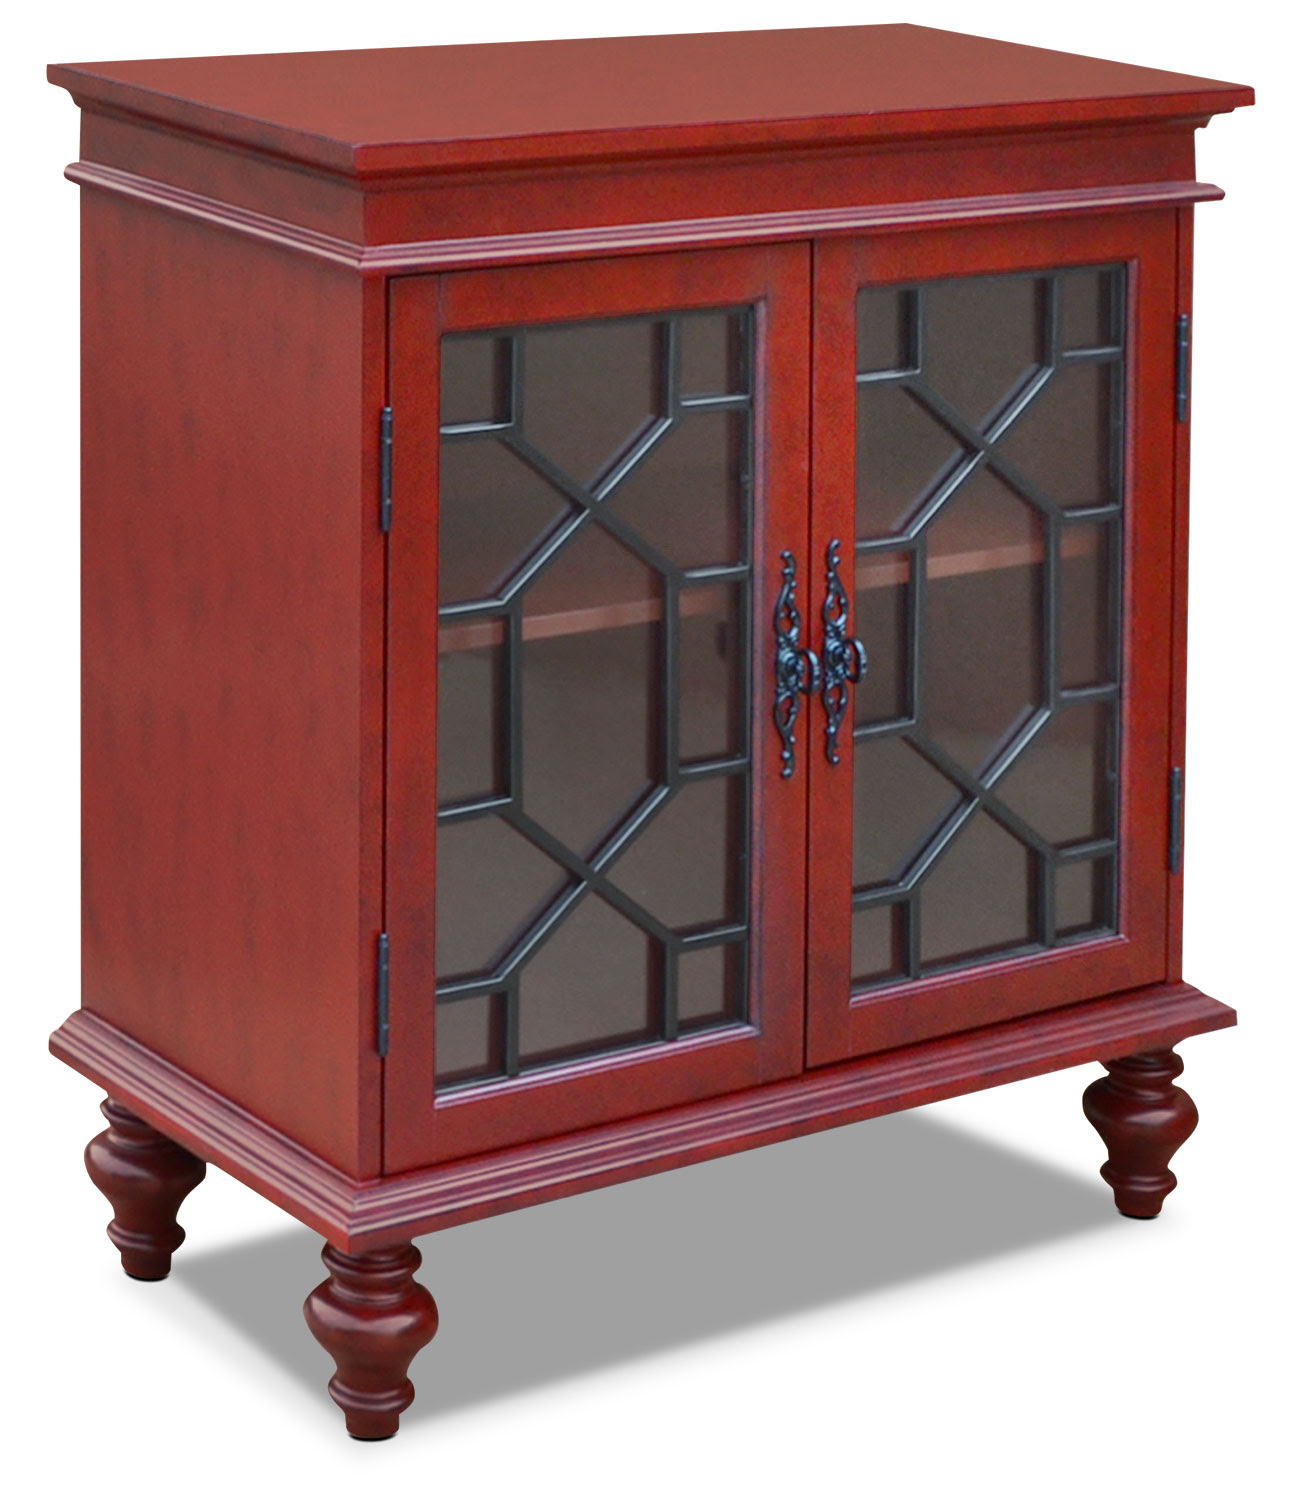 Rigolet Small Accent Cabinet - Red | The Brick